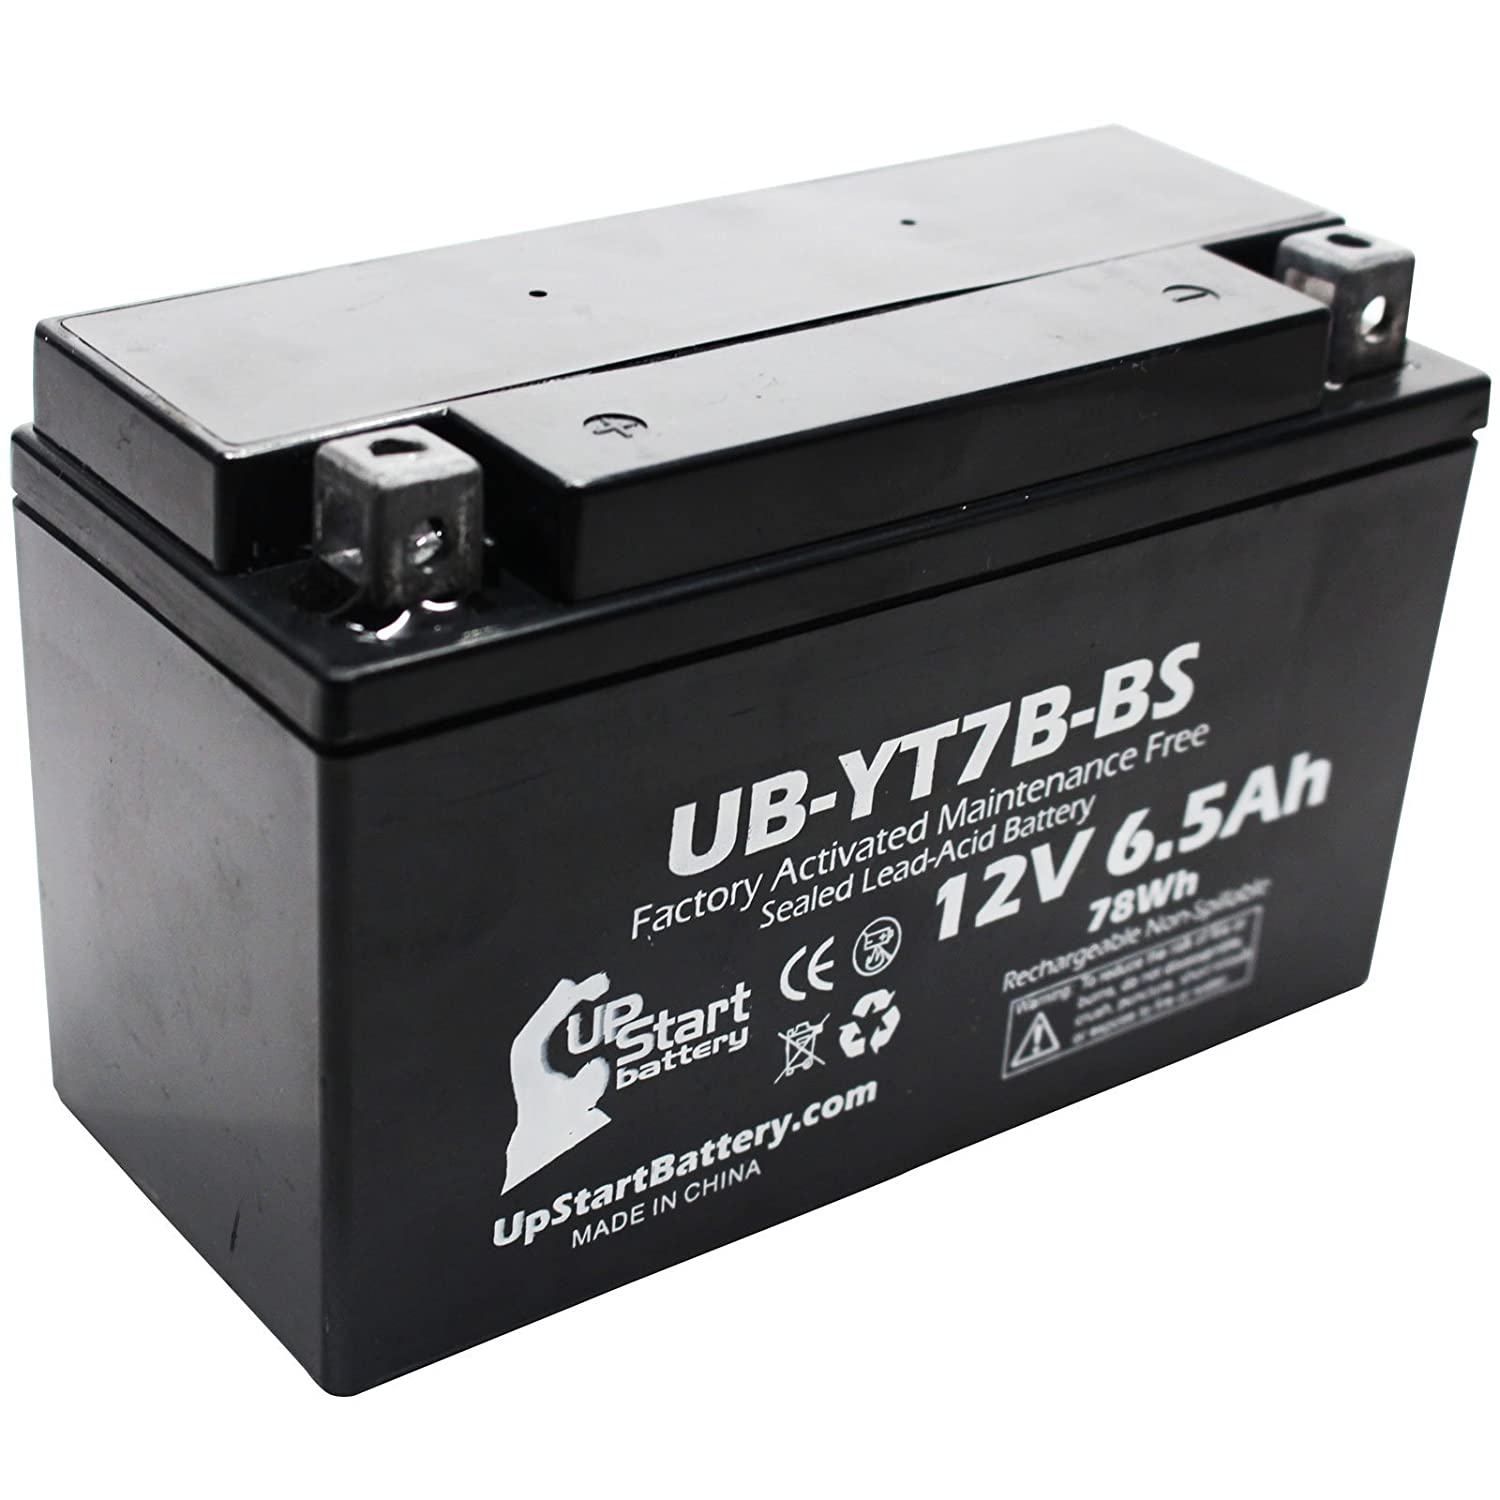 YT7B-BS Battery Replacement (6Ah, 12v, Sealed) Factory Activated, Maintenance Free Battery Compatible with - 2005 Yamaha YFZ450, 2006 Yamaha YFZ450, 2007 Yamaha YFZ450, 2008 Yamaha YFZ450 Upstart Battery